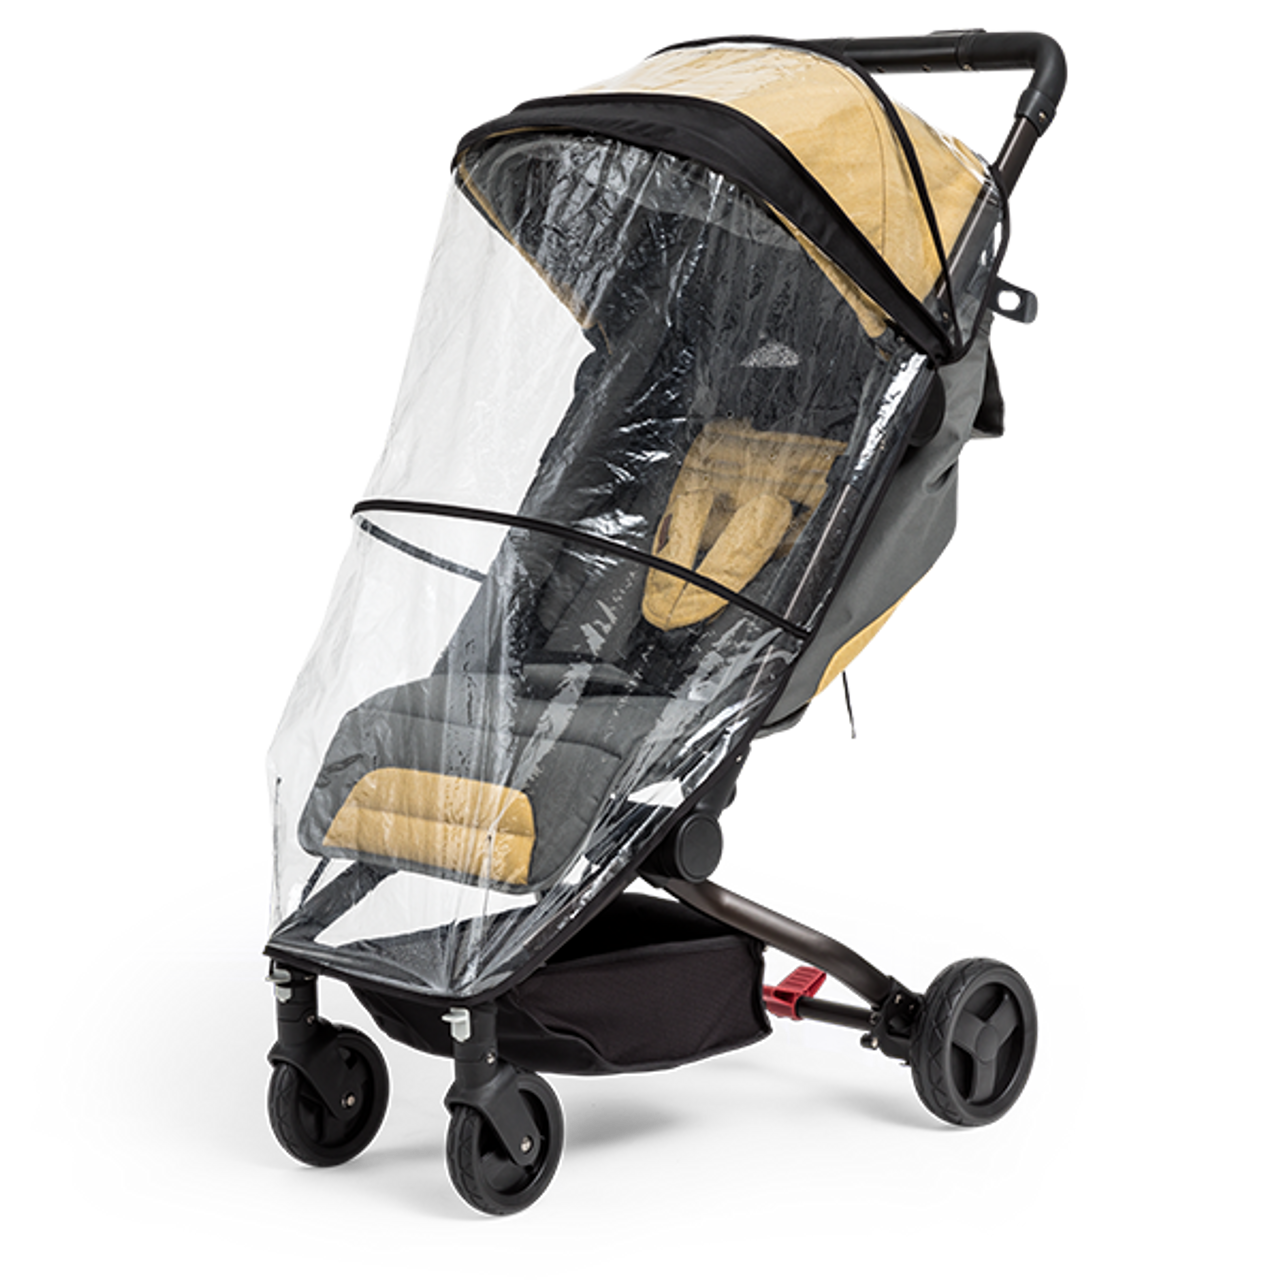 Edwards & Co Otto Rain Cover at Baby Barn Discounts The Otto Rain Cover protects your baby from wind and rain, in a lightweight and compact material to save more space.